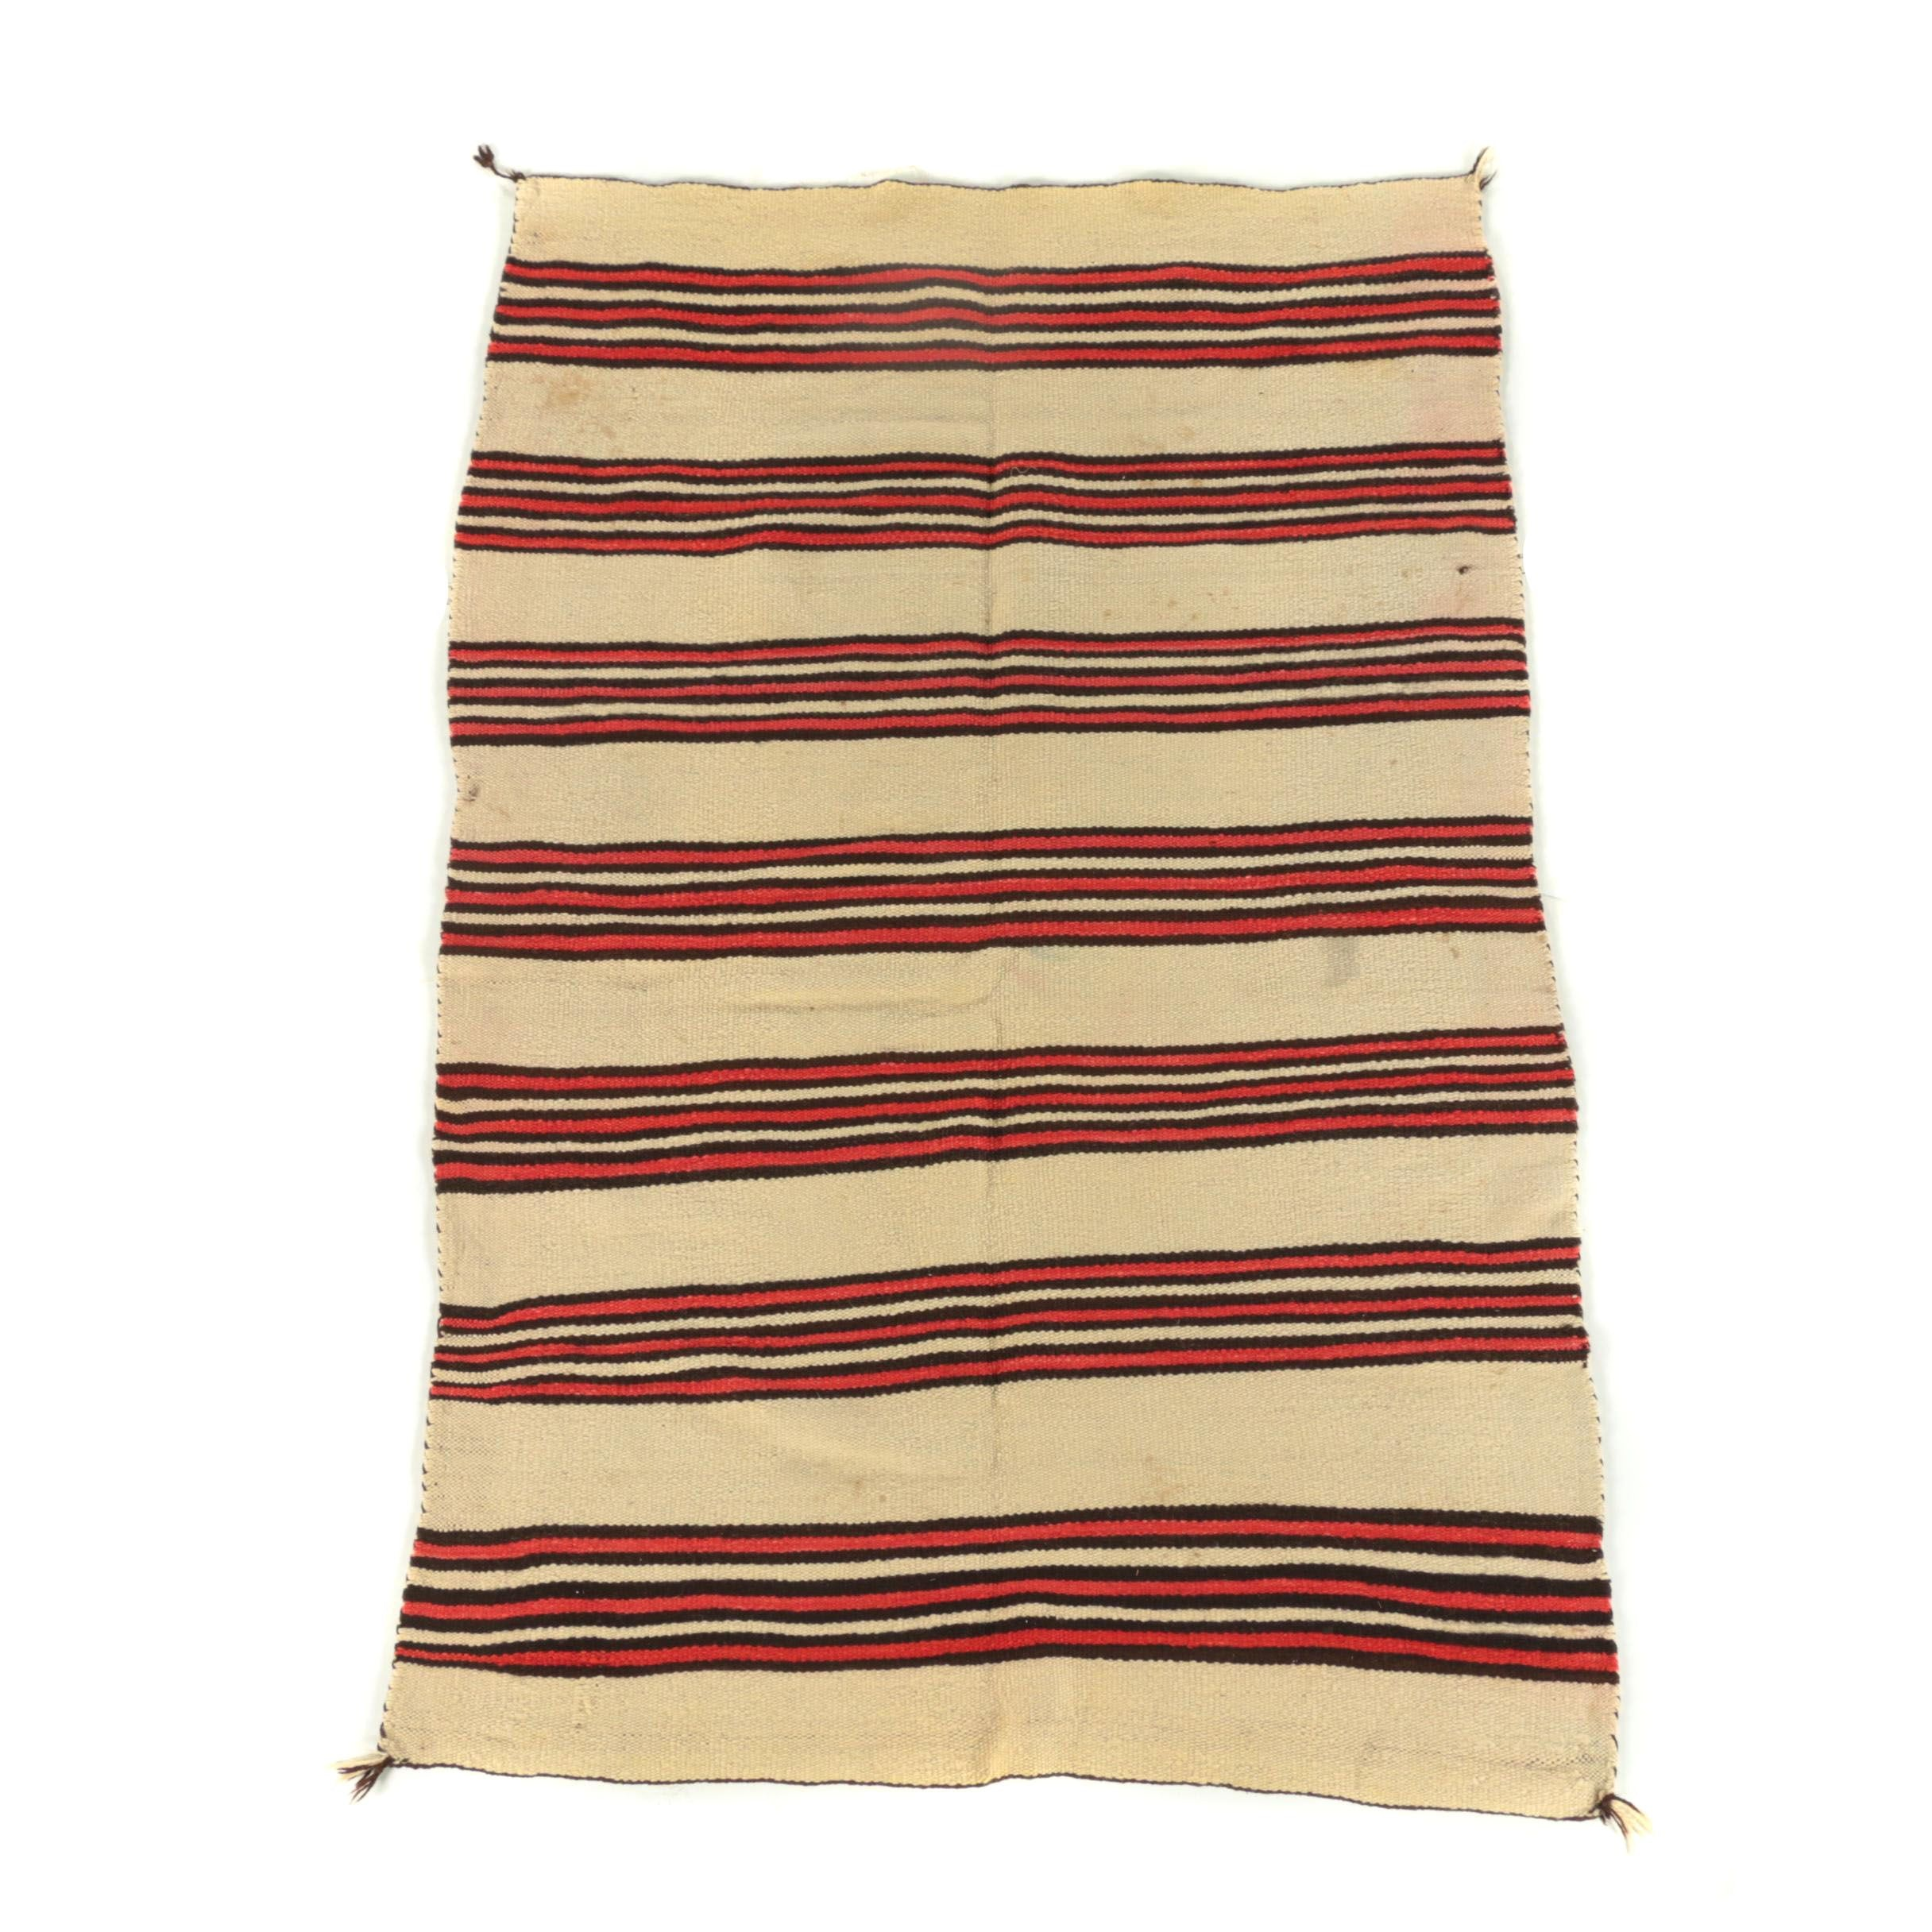 Handwoven Pueblo Indian Style Wool Blanket, Early 20th Century